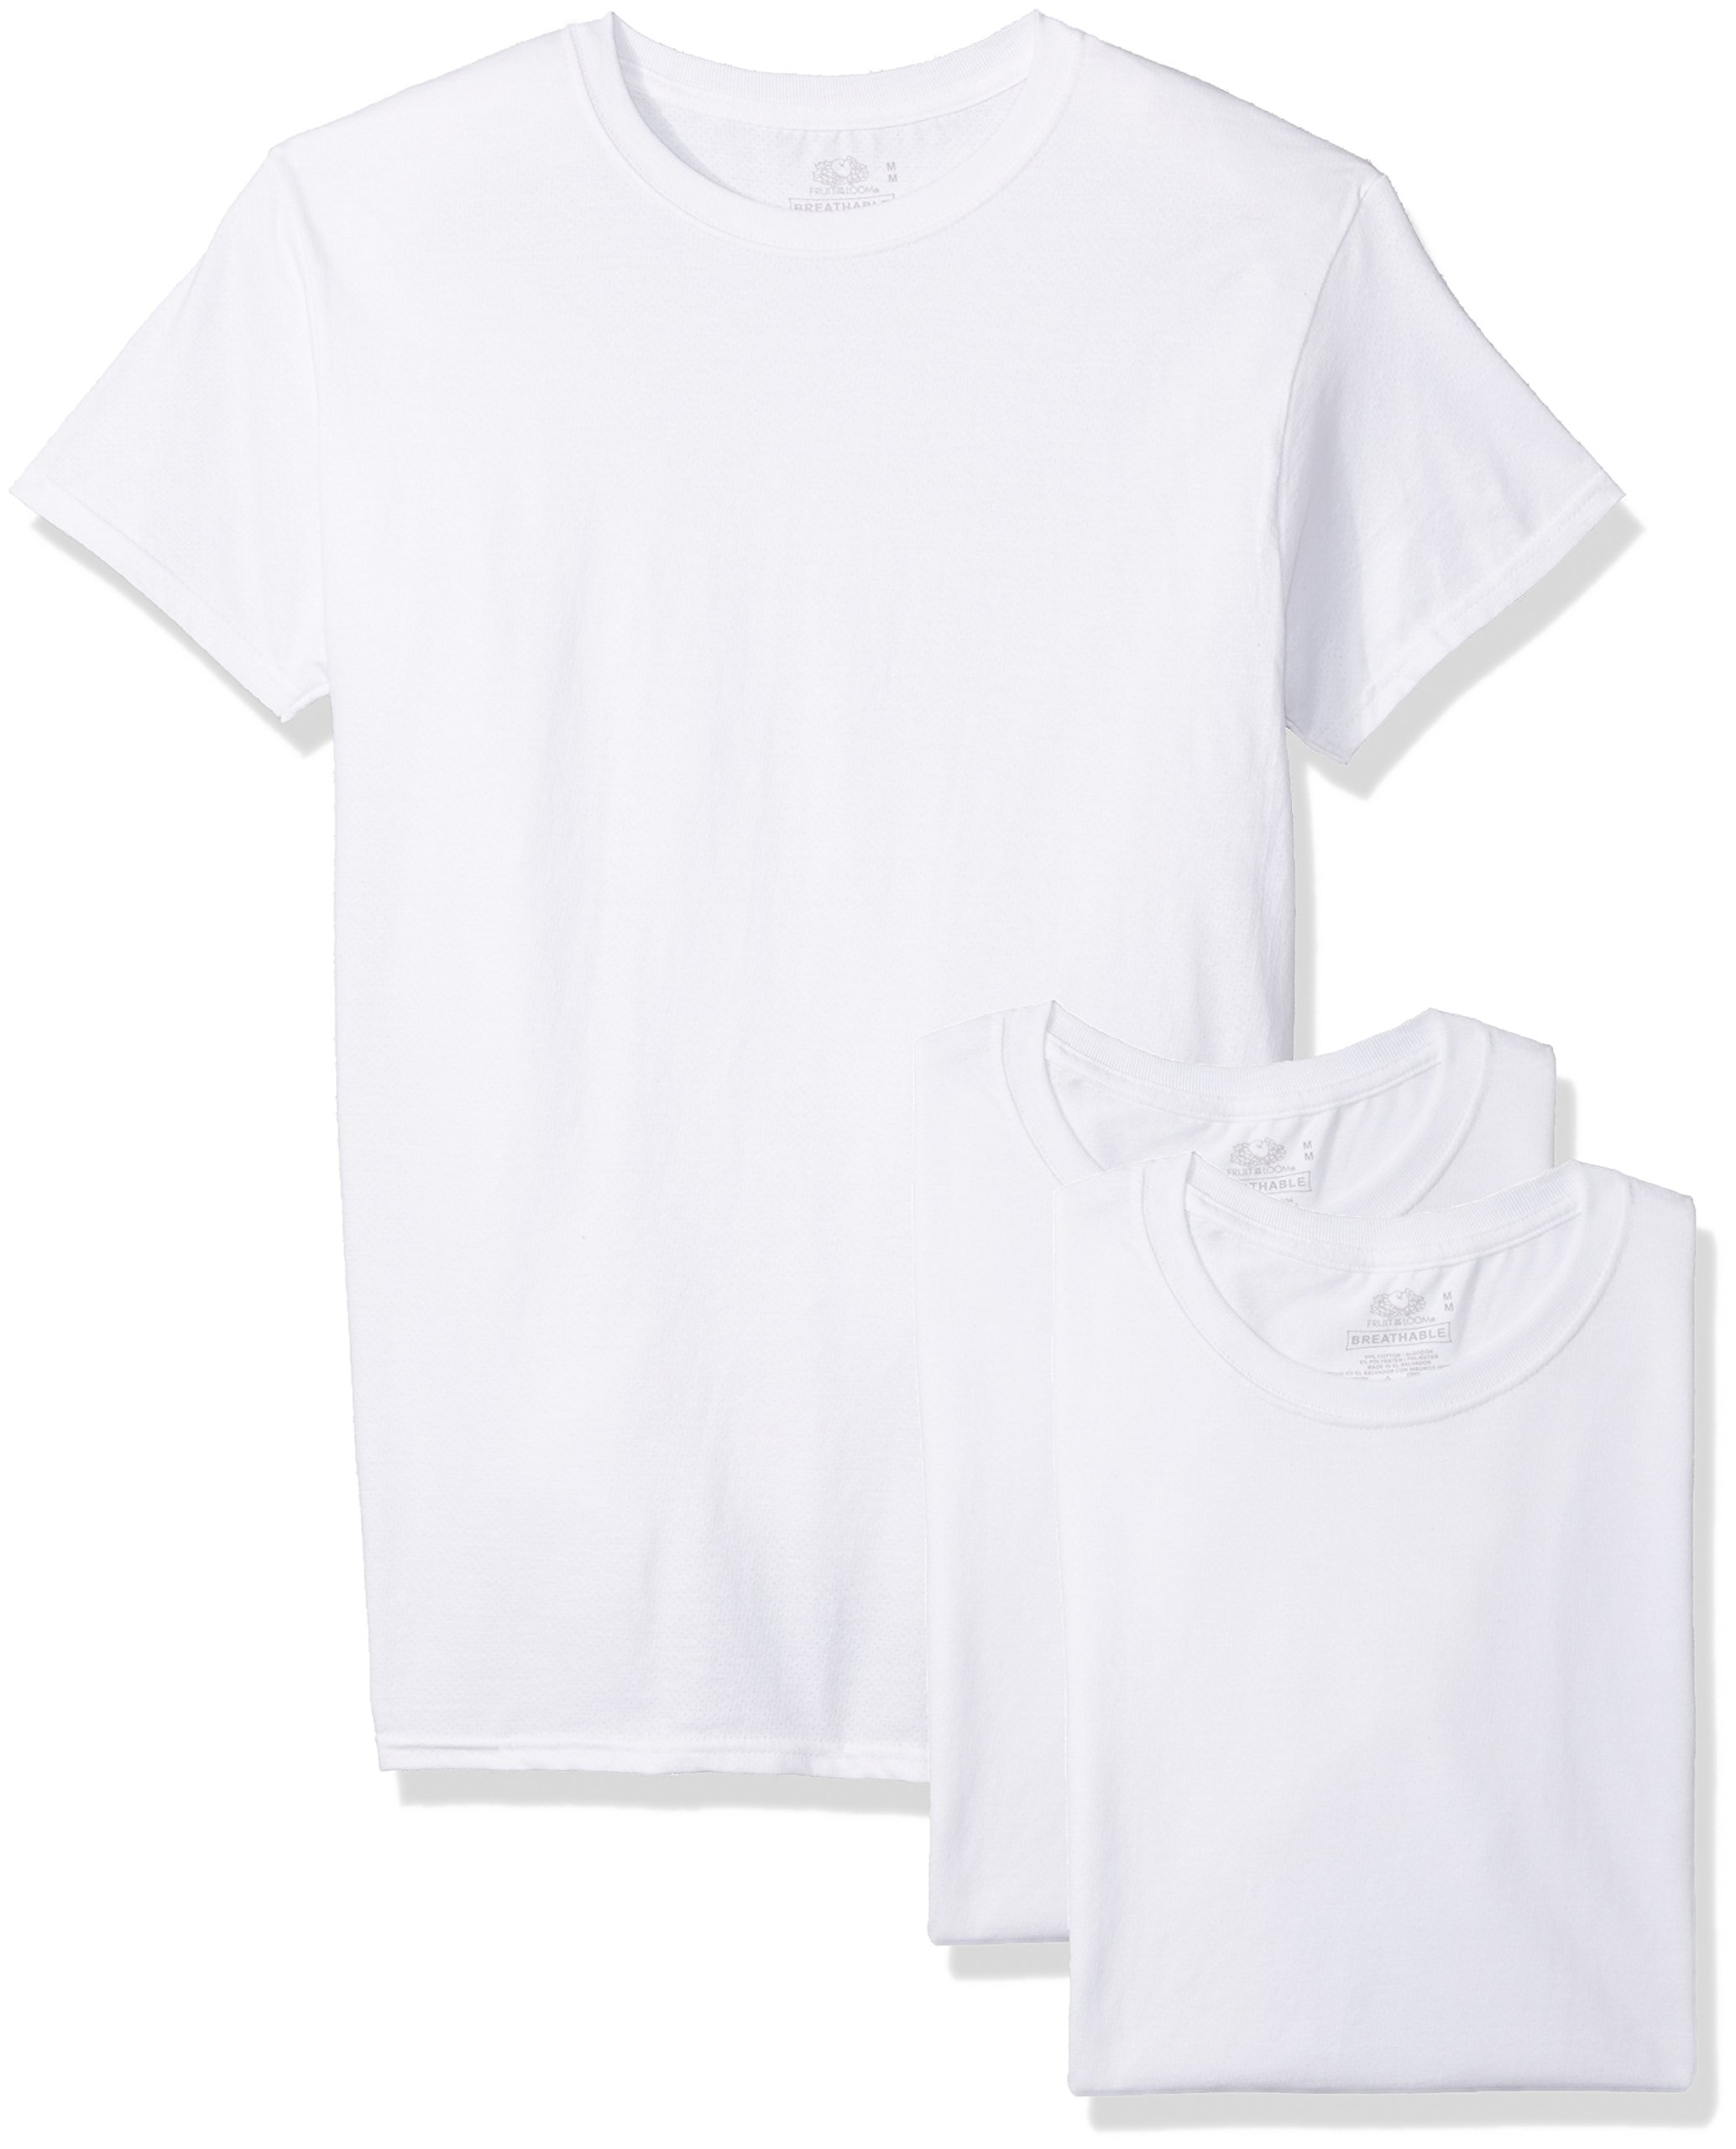 Fruit of the Loom Men's 3-Pack Breathable Crew T-Shirt, White Ice, Large